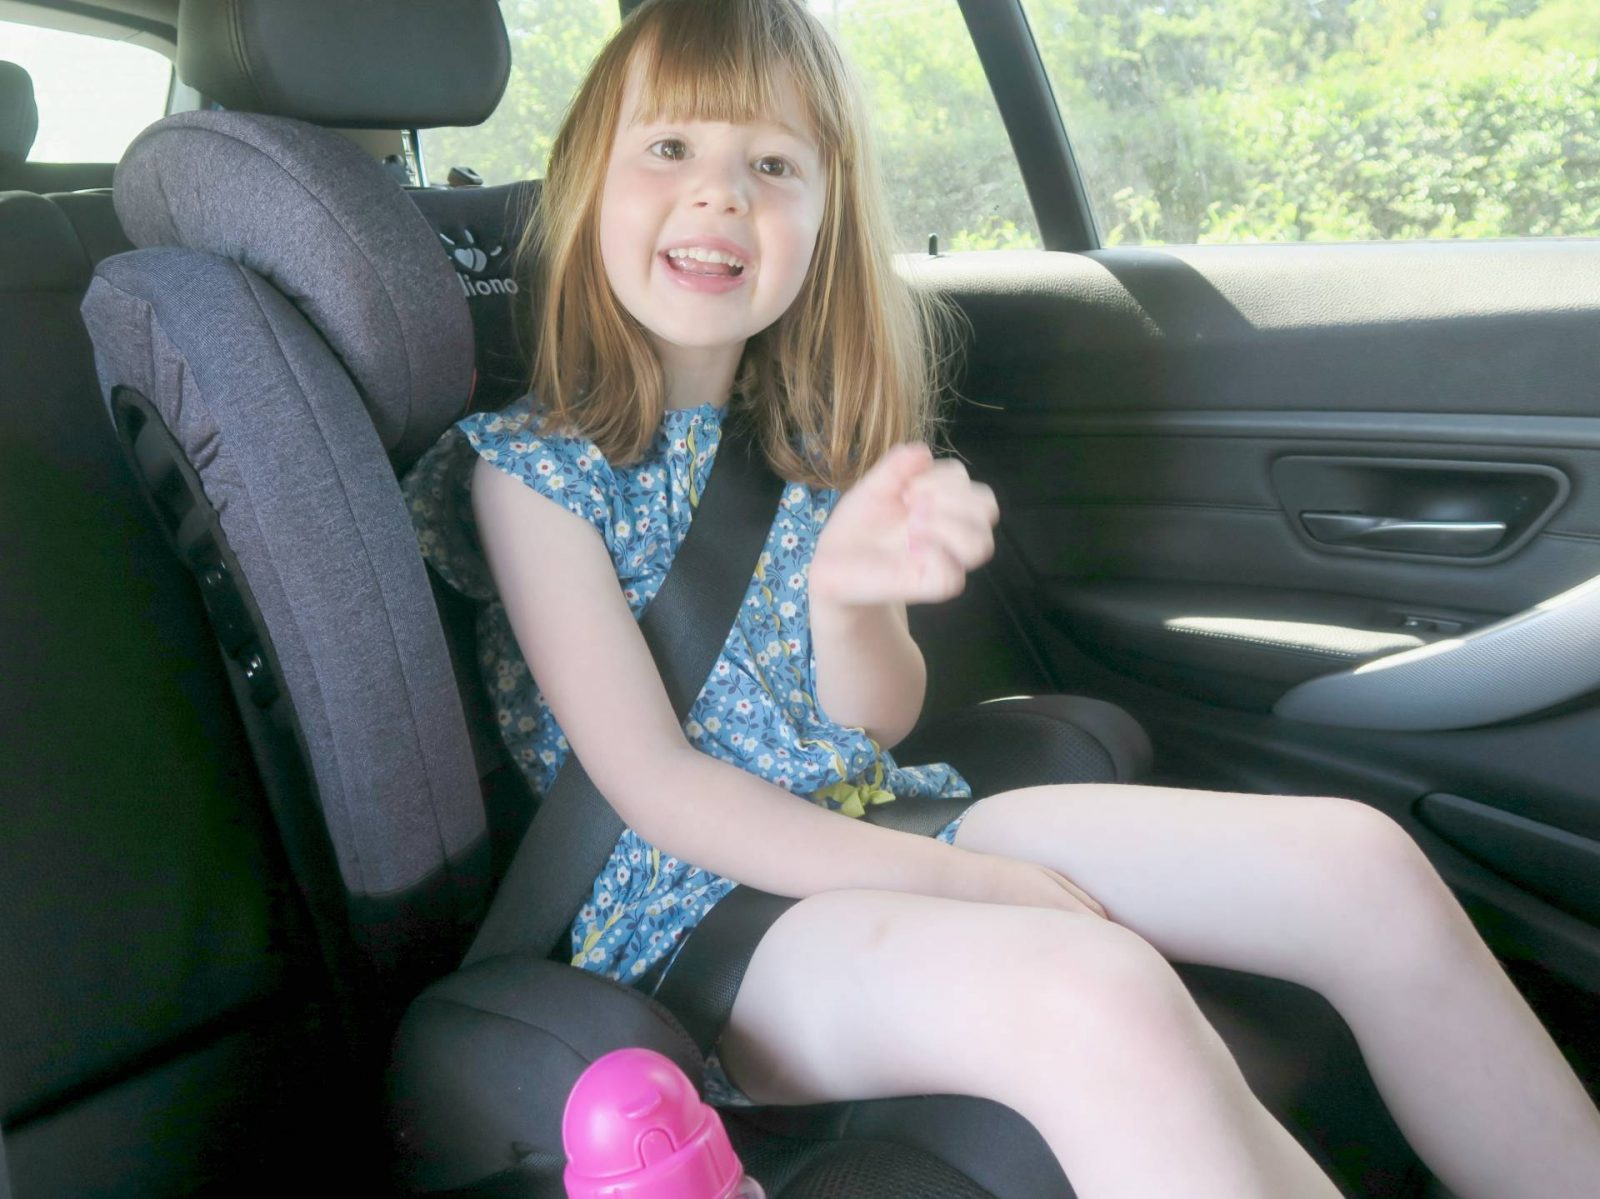 Traveling in Comfort With The Diono mXT Car Seat…